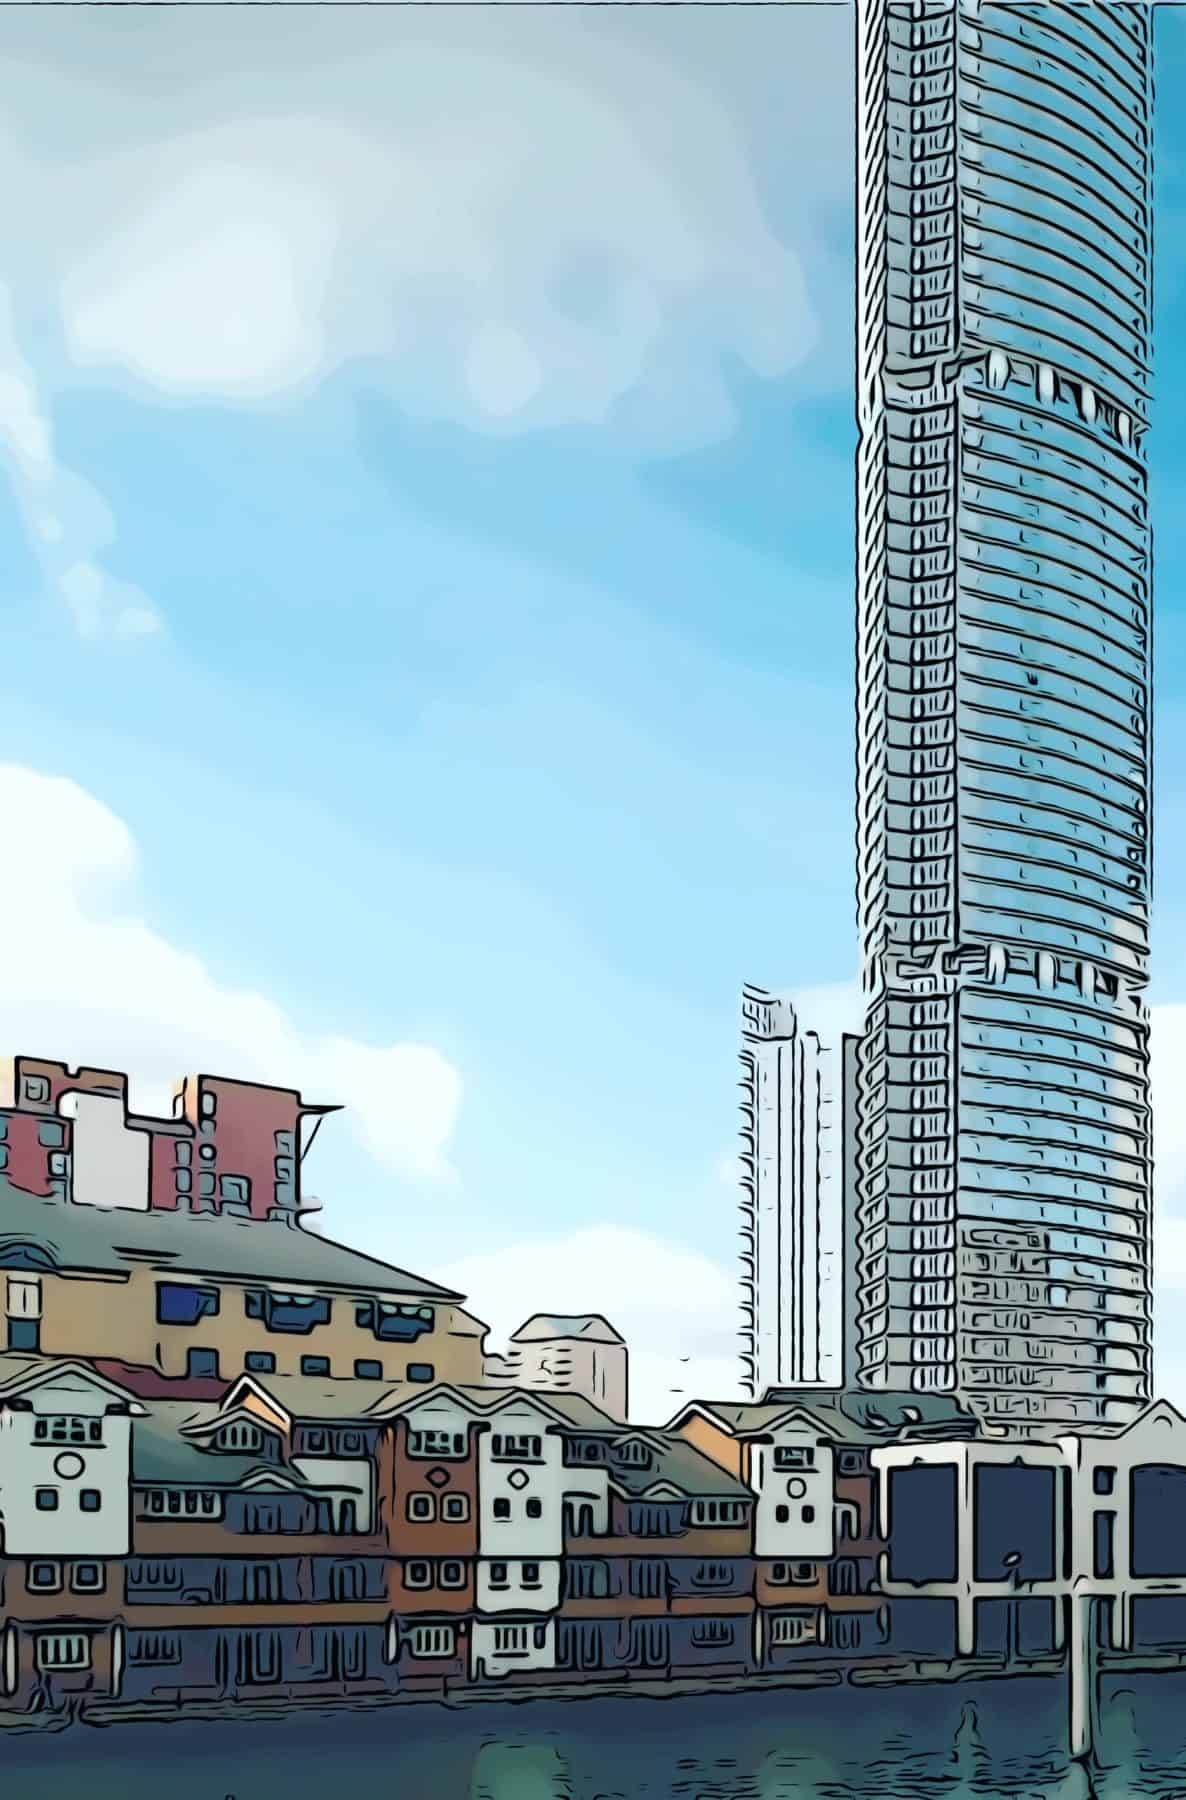 An artists impression showing the towering Aspen building from South Dock